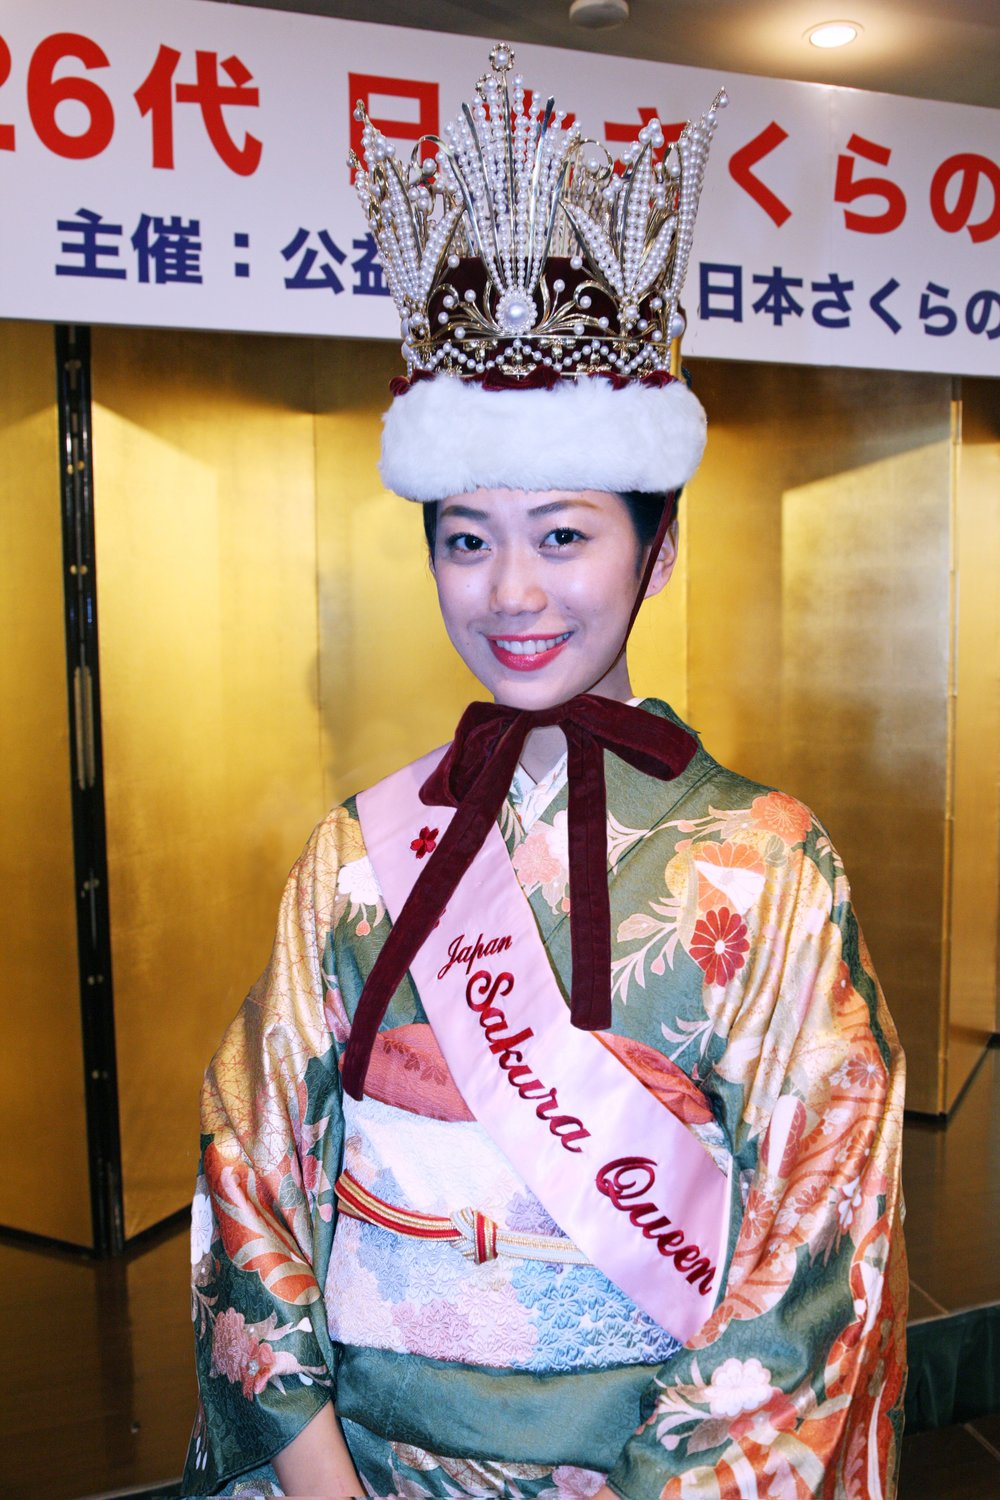 The Japan Cherry Blossom Queen -- Yuki Shimono